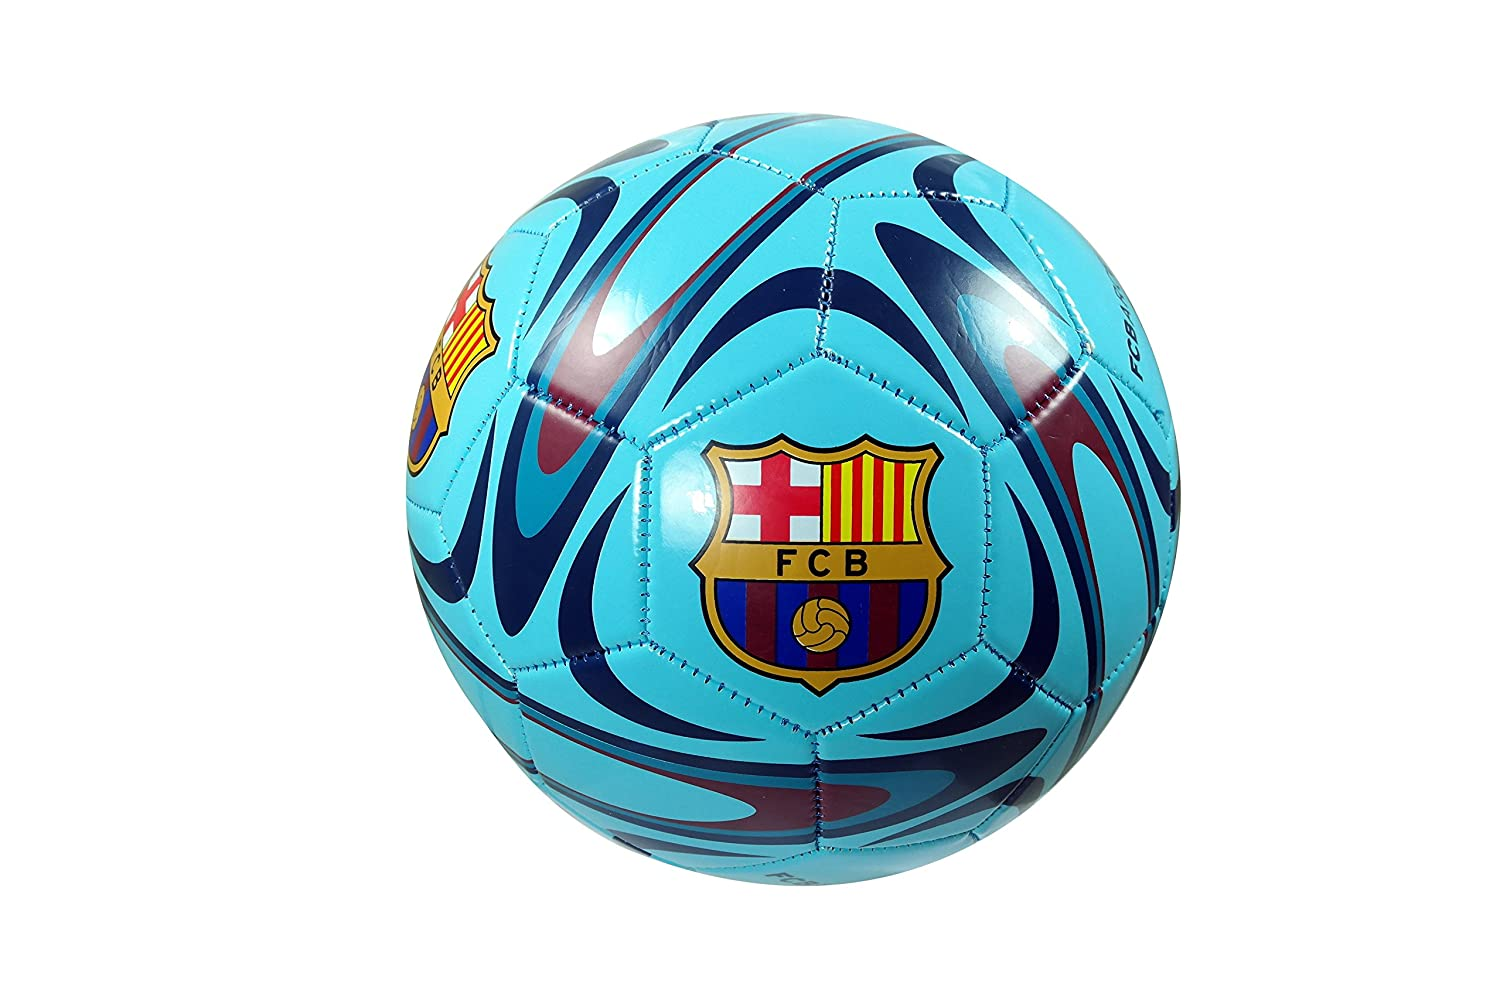 FC Barcelona Authentic Official Licensedサッカーボールサイズ5 – 09 – 1 B077NV618N